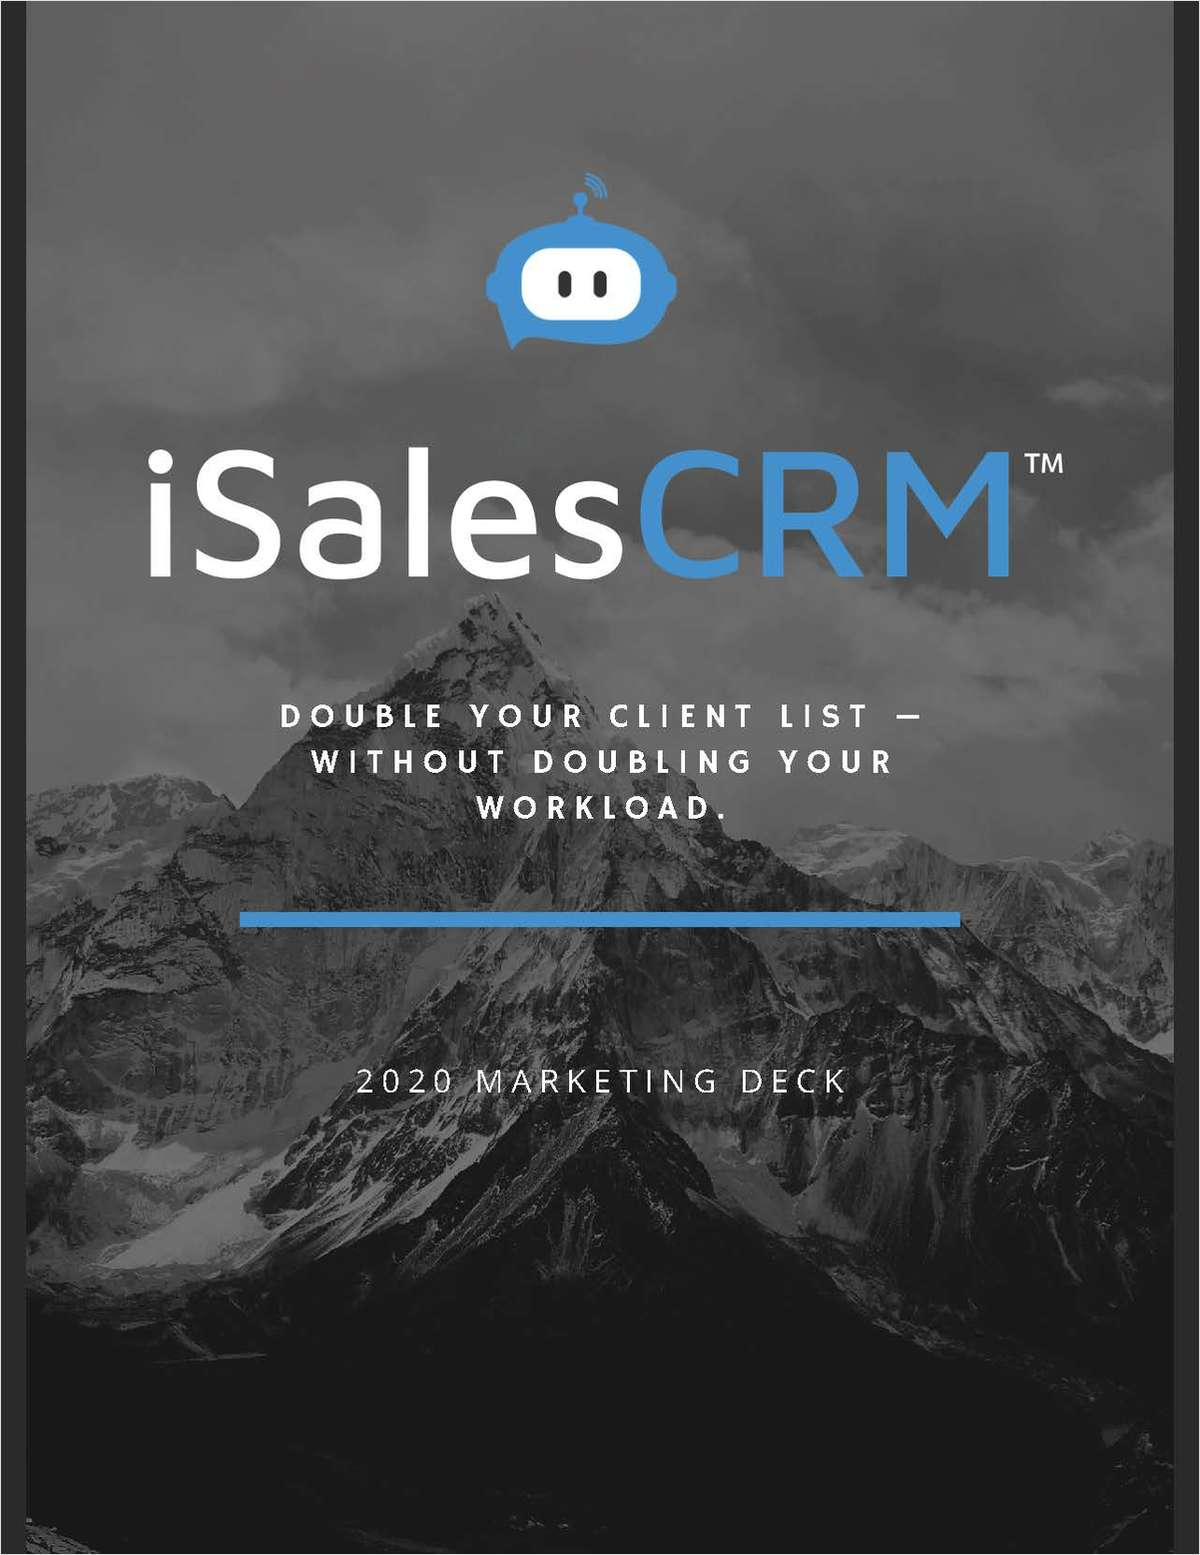 iSalesCRM - Automated Sales Follow-Up